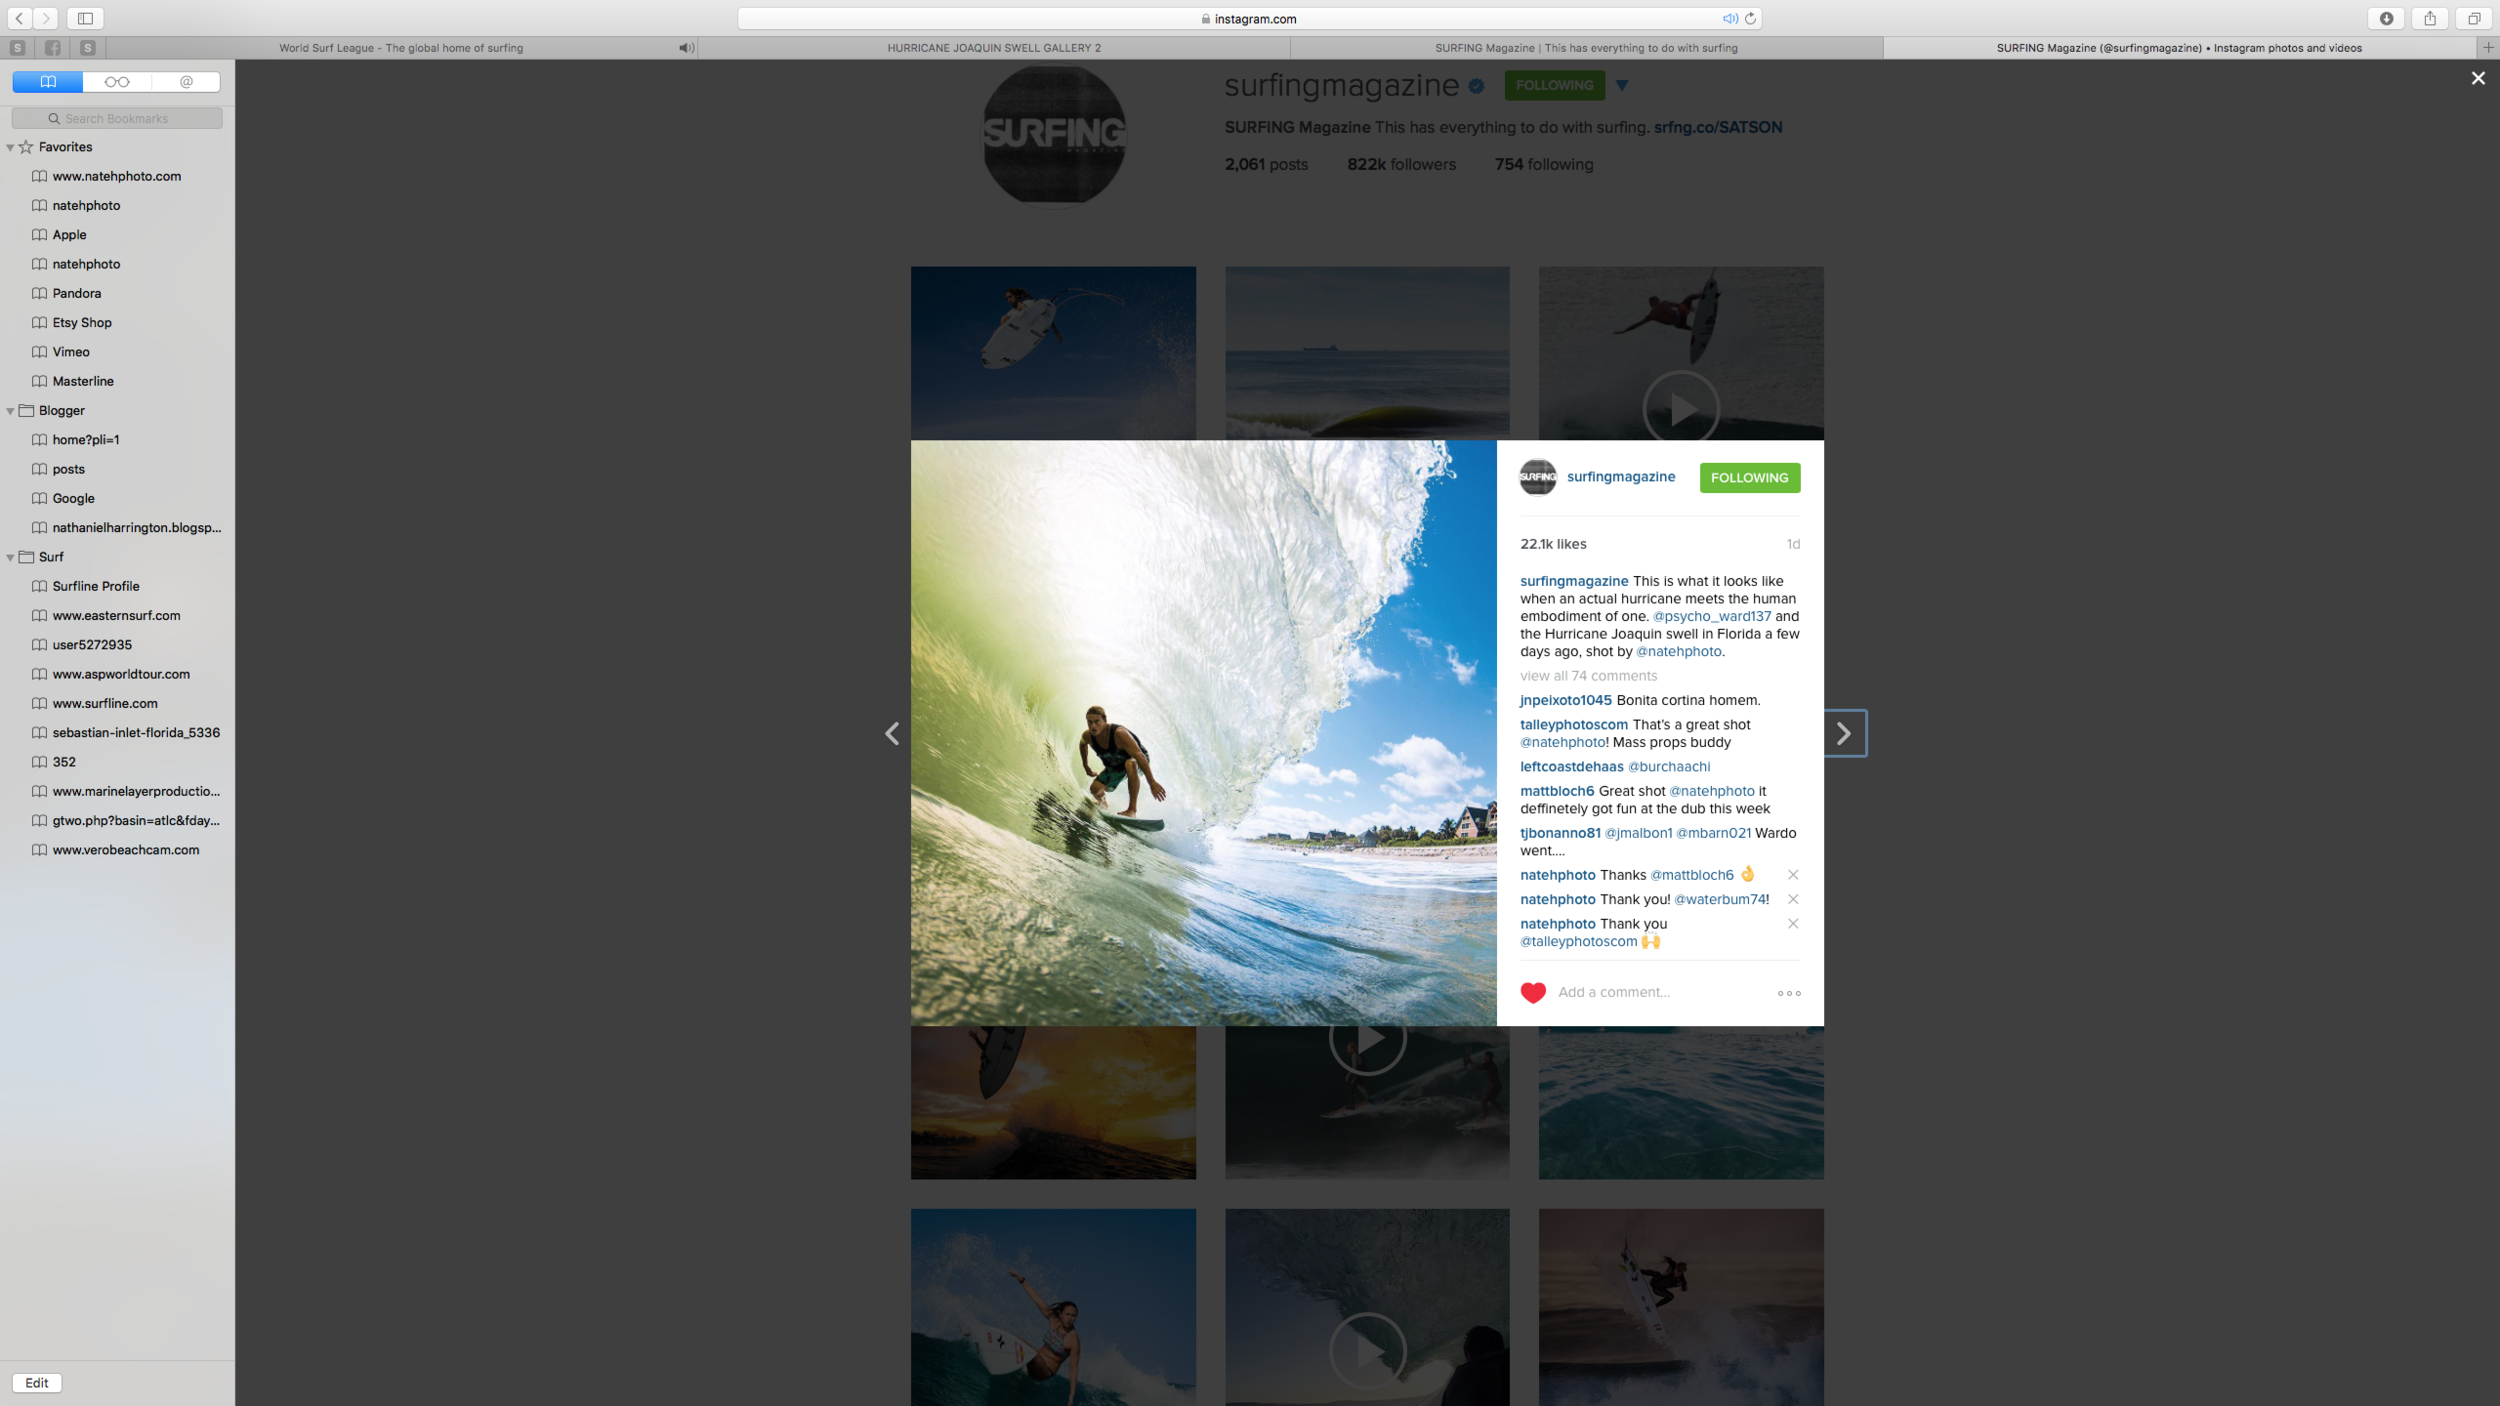 One image of Chris Ward was used as a Surfing Magazine Instagram post. Considering they have almost a million followers this is really good media! This photo has received over 22,000 likes.